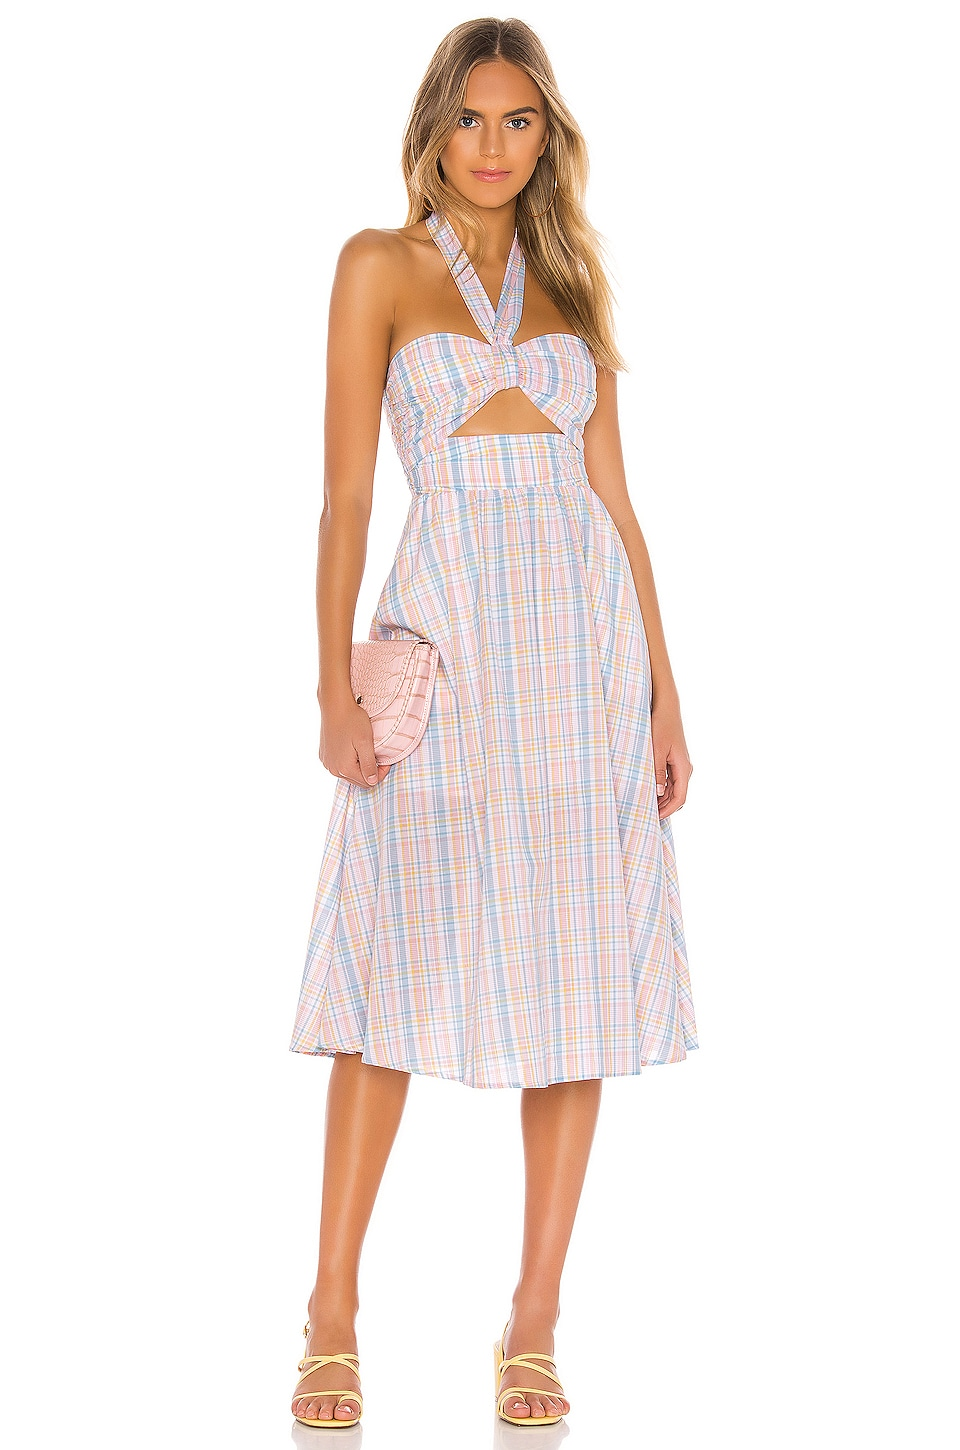 MAJORELLE Florian Midi Dress in Pastel Plaid